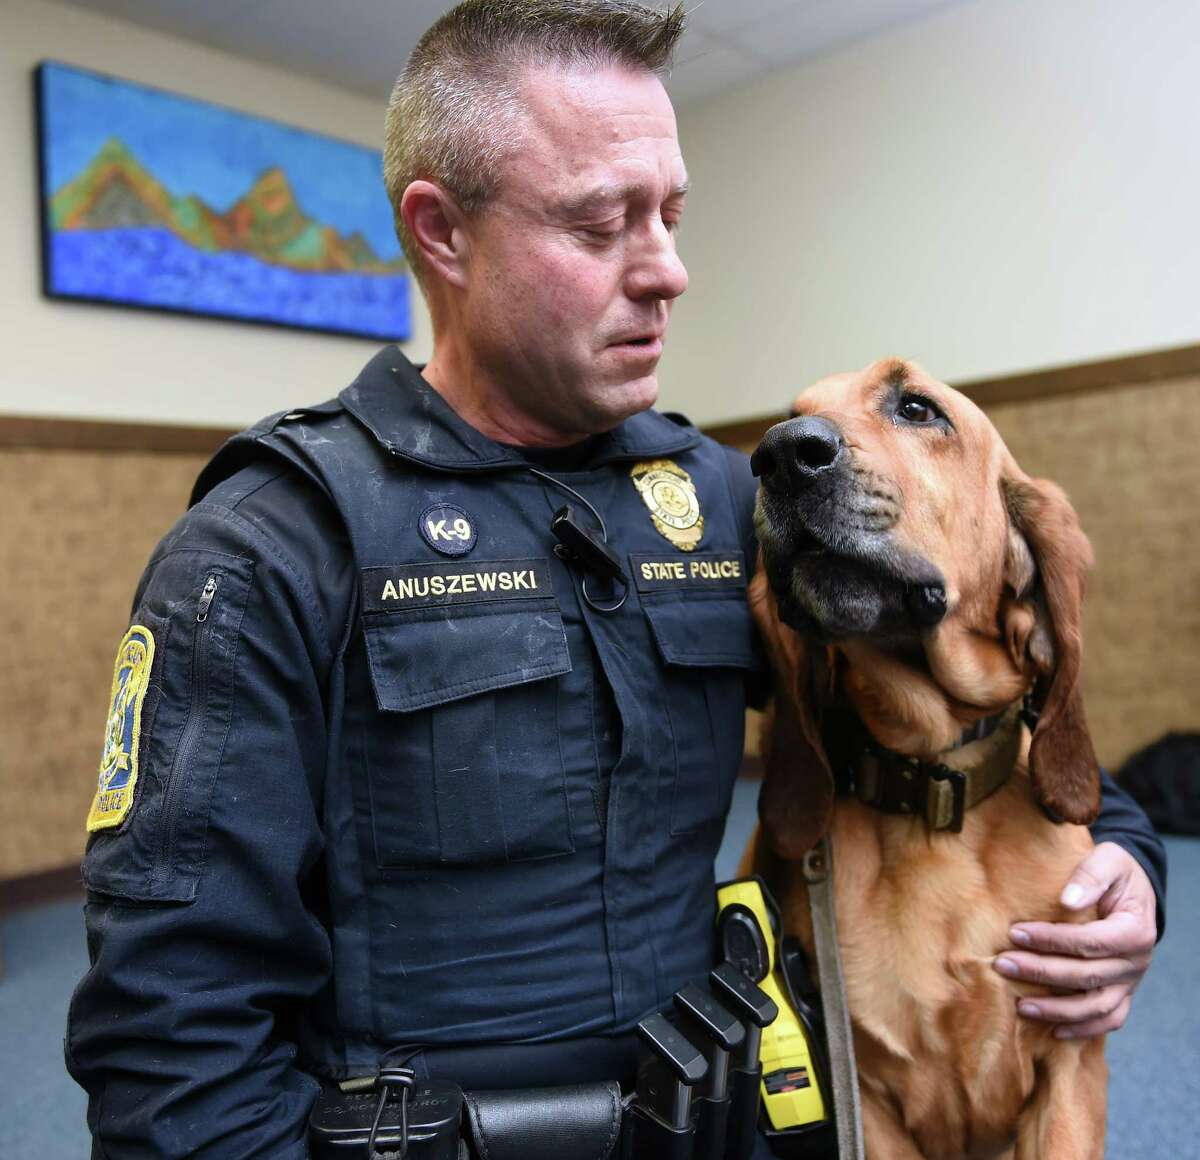 Connecticut State Police Trooper 1st Class Edward Anuszewski is photographed with his bloodhound tracking dog, Texas, at the Connecticut State Police Canine Unit Training Center in Meriden on March 11, 2019.